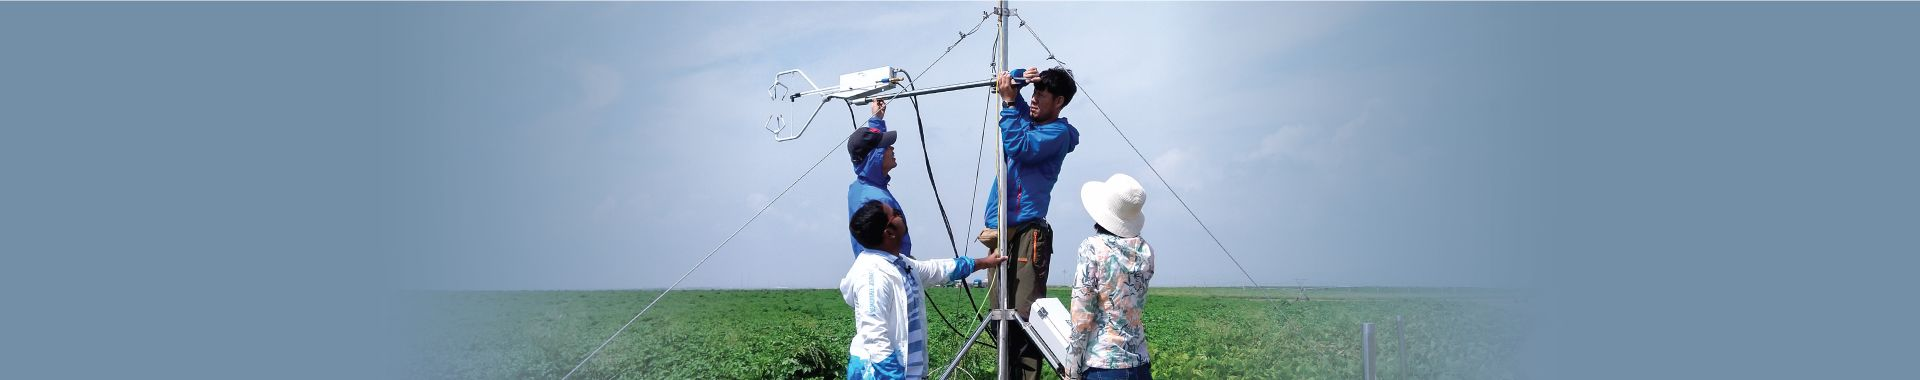 Setting up a weather station with an IRGASON